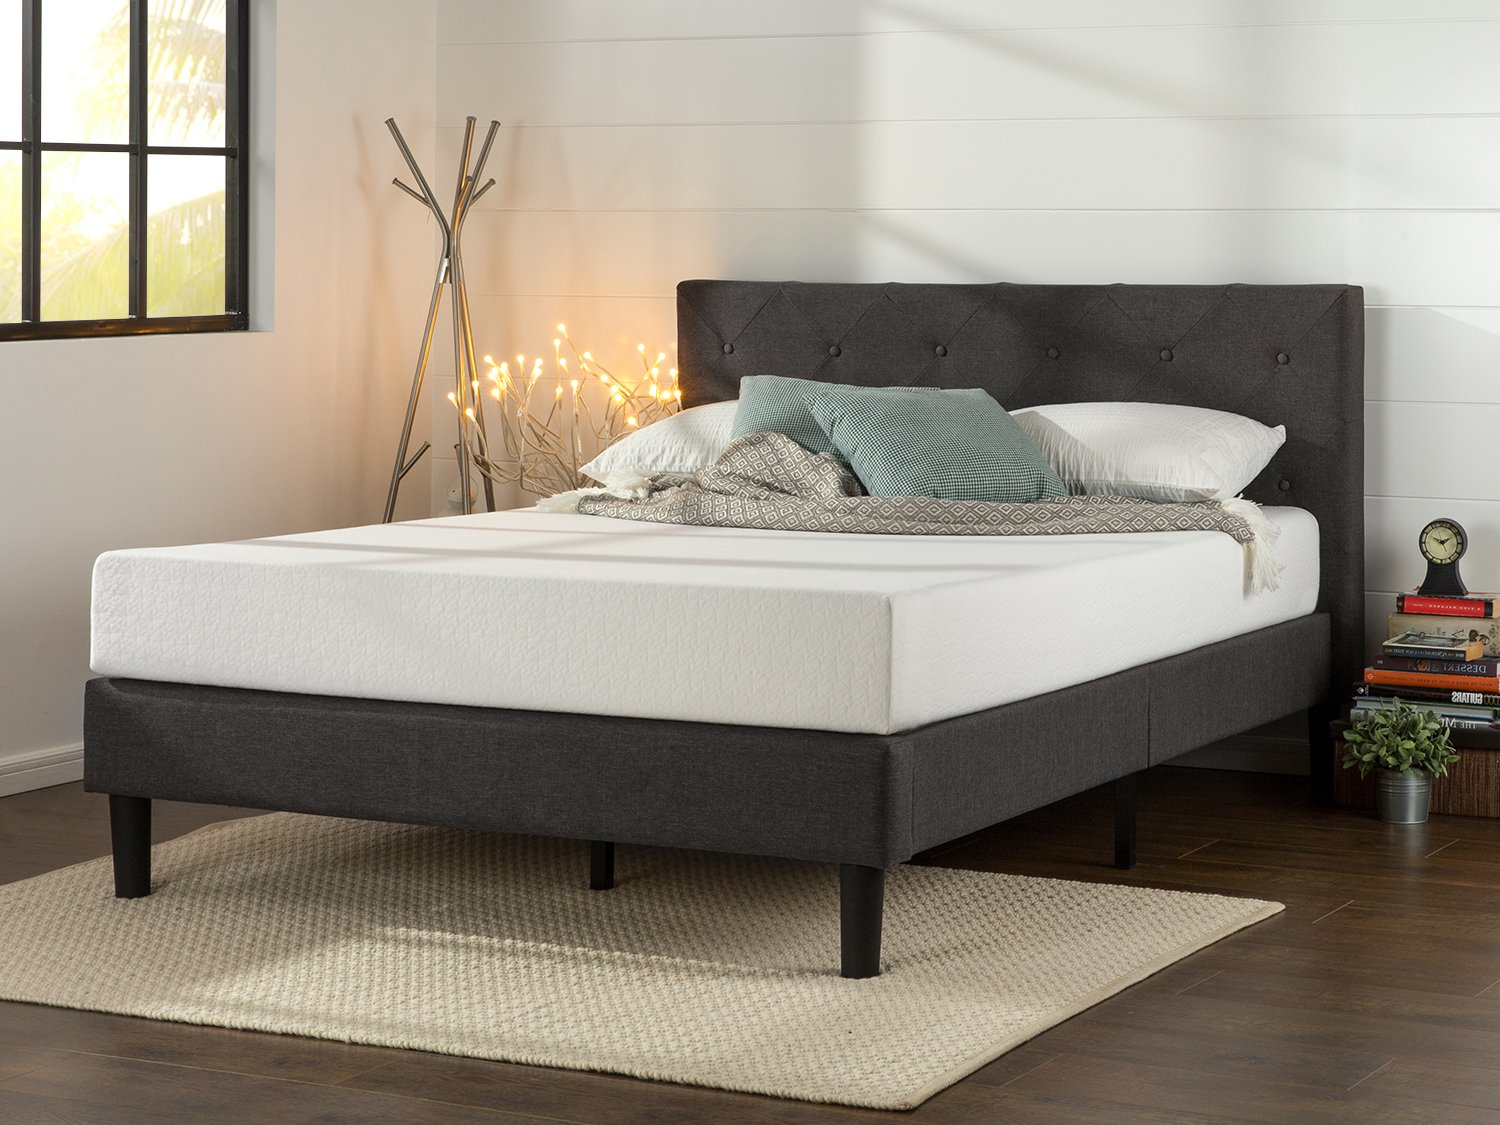 Amazon com  Zinus Upholstered Diamond Stitched Platform Bed with Wooden  Slat Support  Full  Kitchen   Dining. Amazon com  Zinus Upholstered Diamond Stitched Platform Bed with